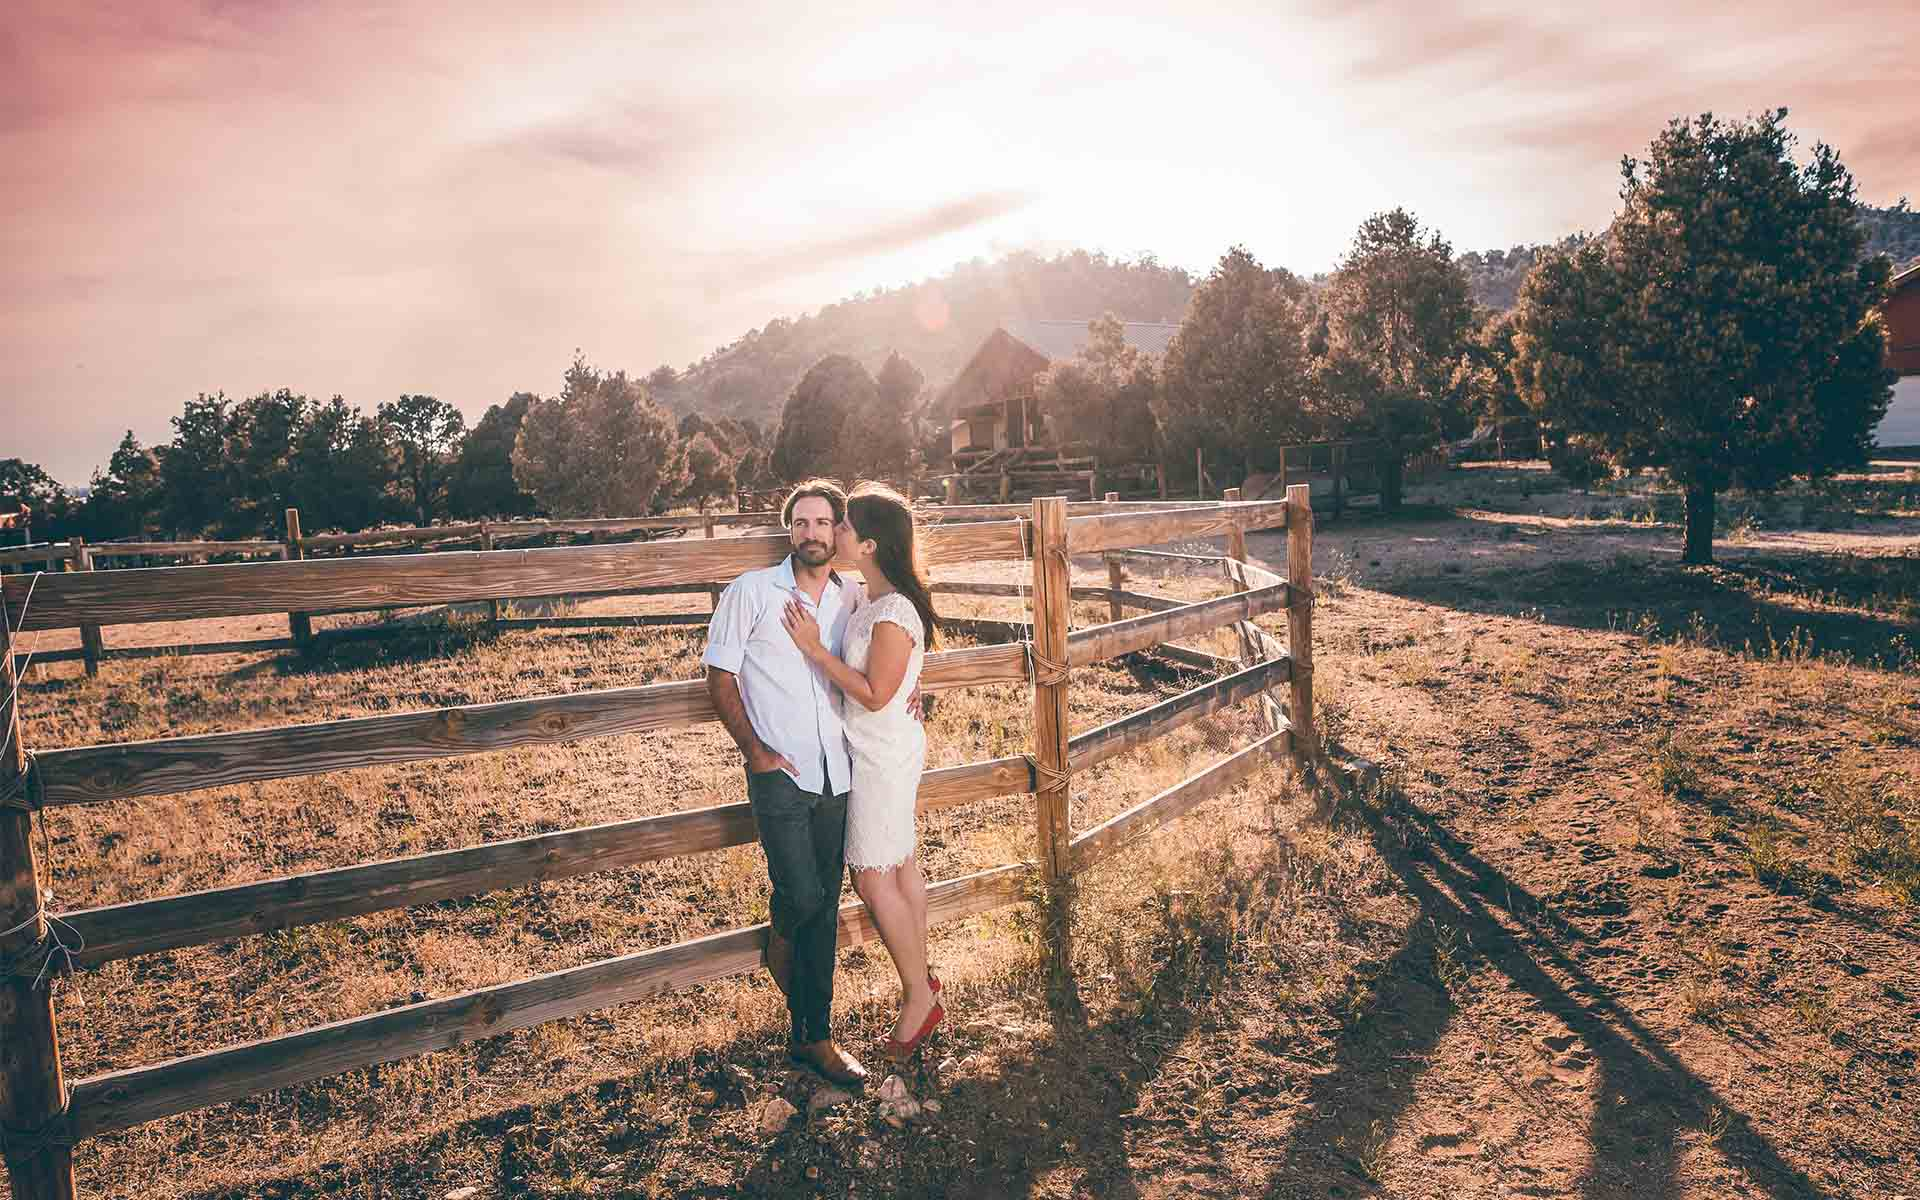 big bear ranch engagement session in california by jimmy bui photography